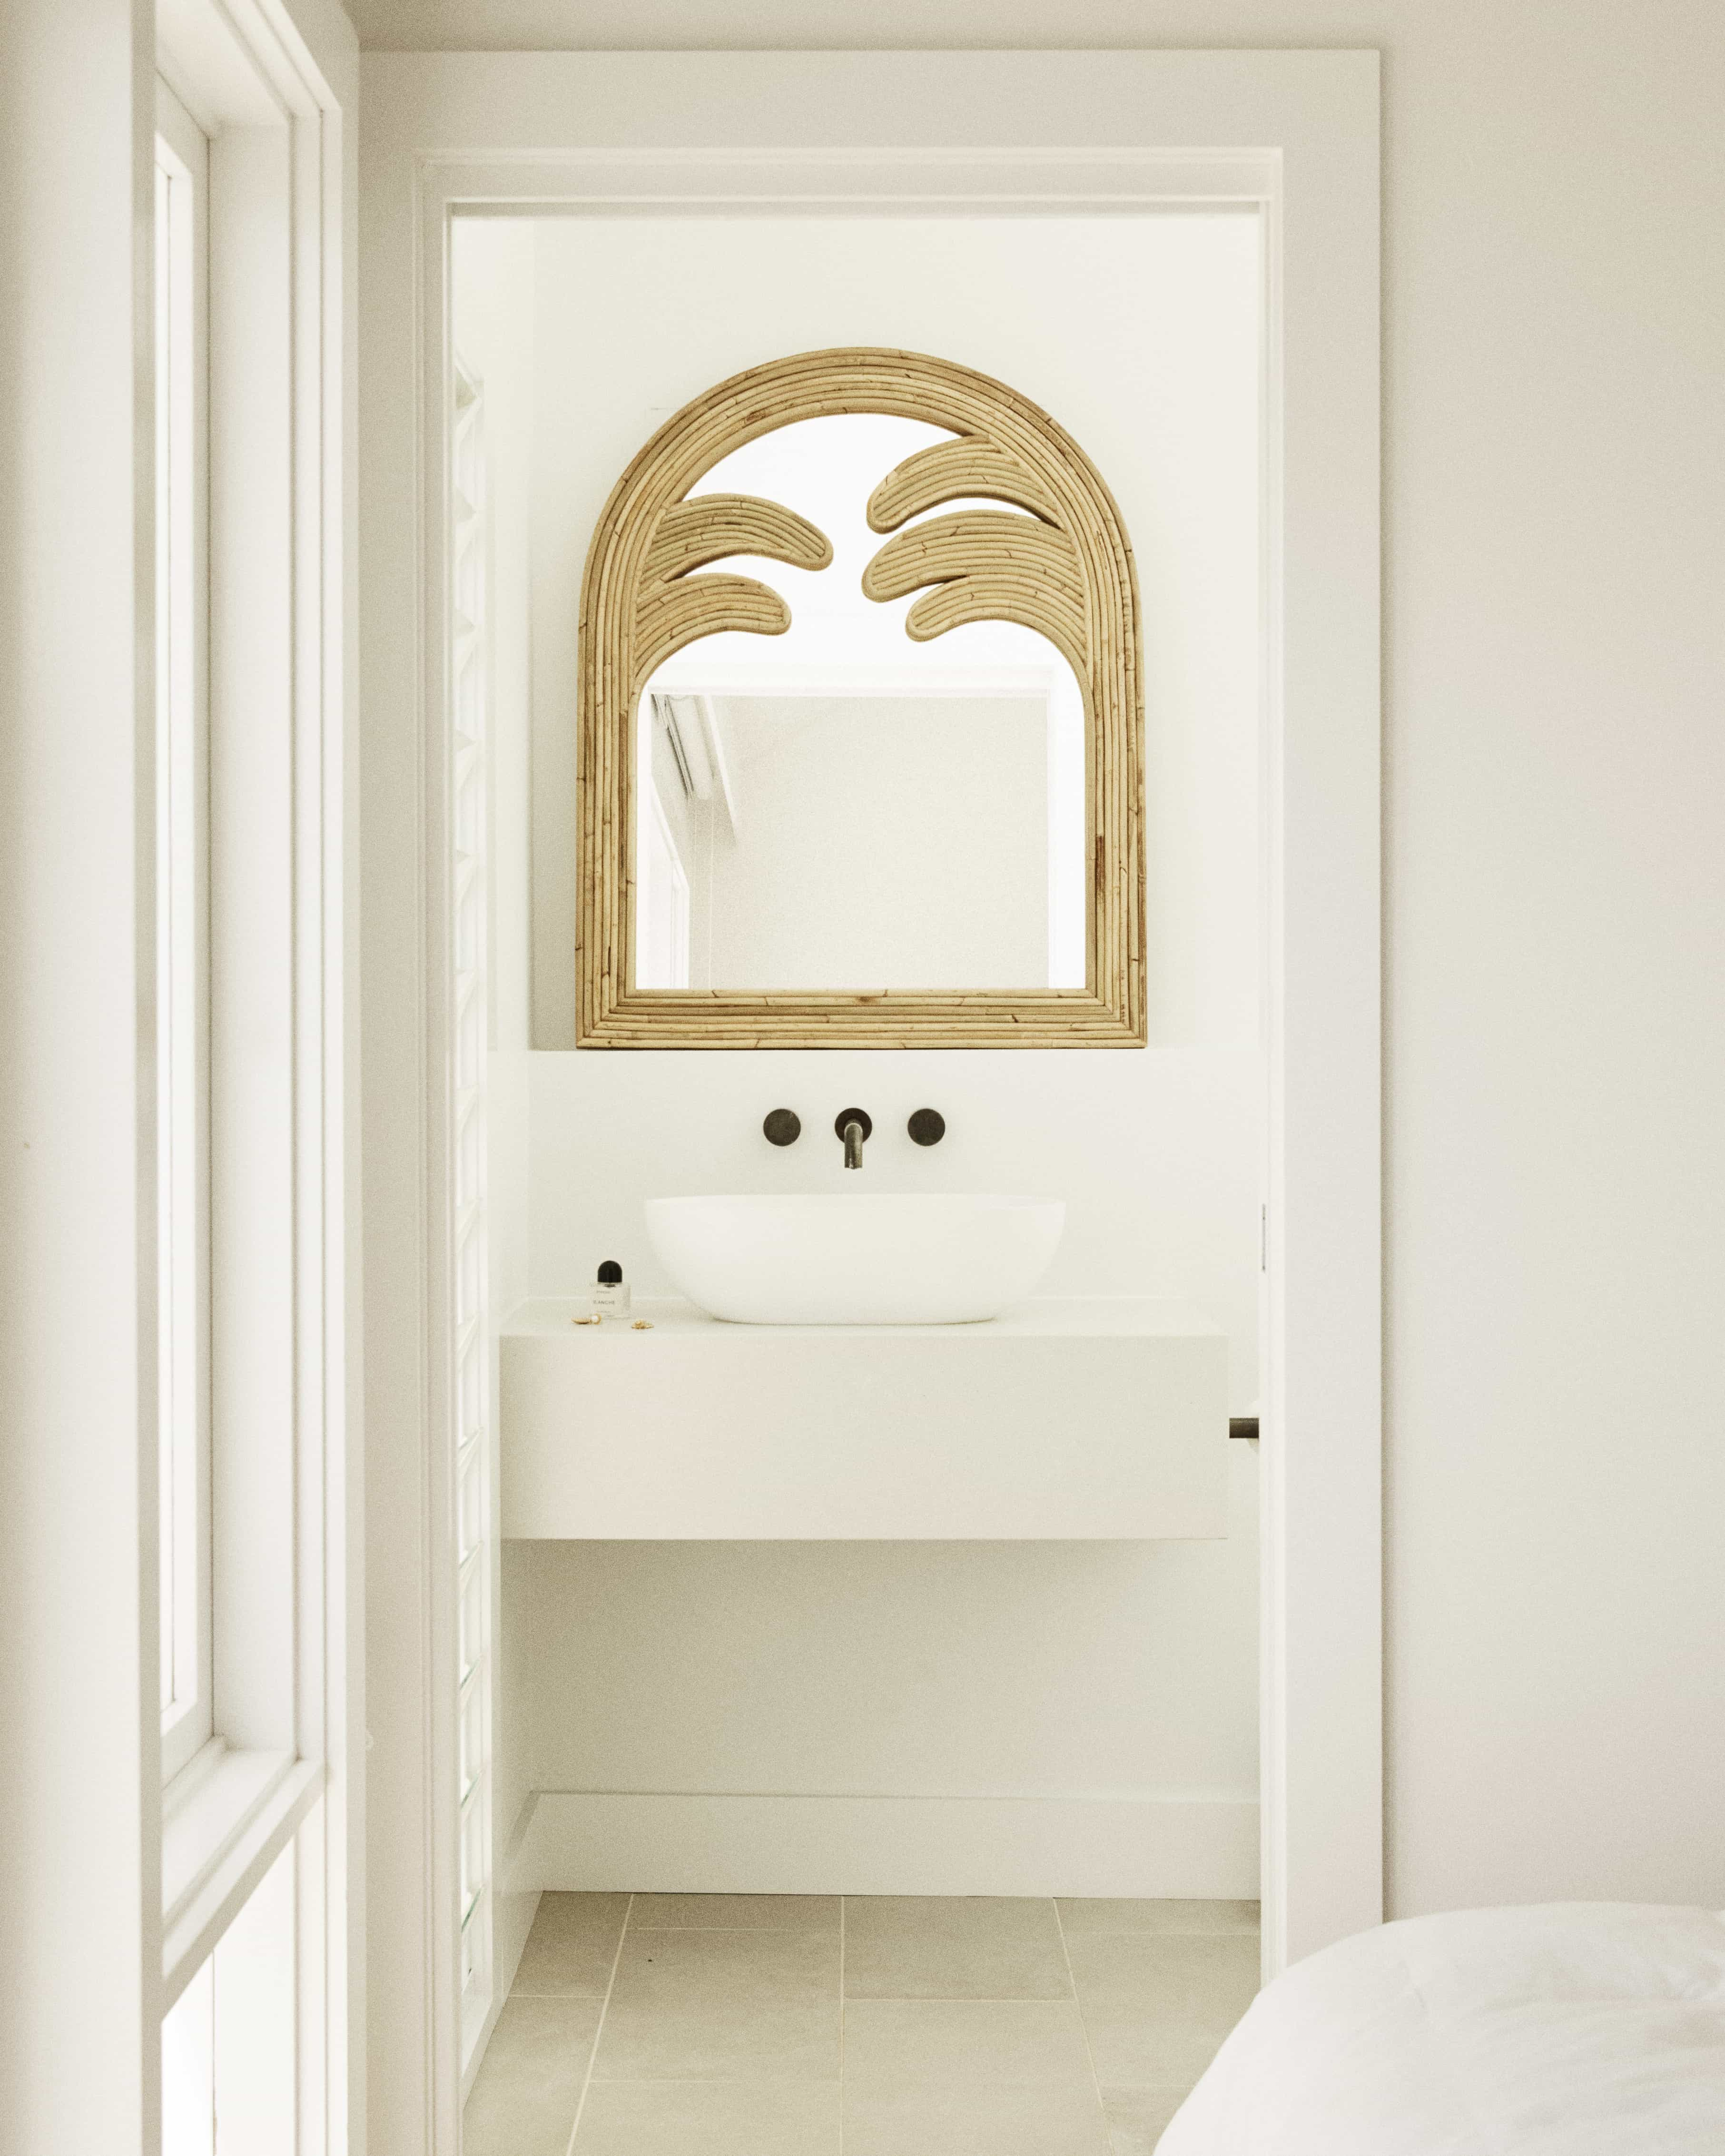 Golden By Sarah Ellison Local Australian Contemporary Furniture Design And Styling Sydney, Nsw Image 8